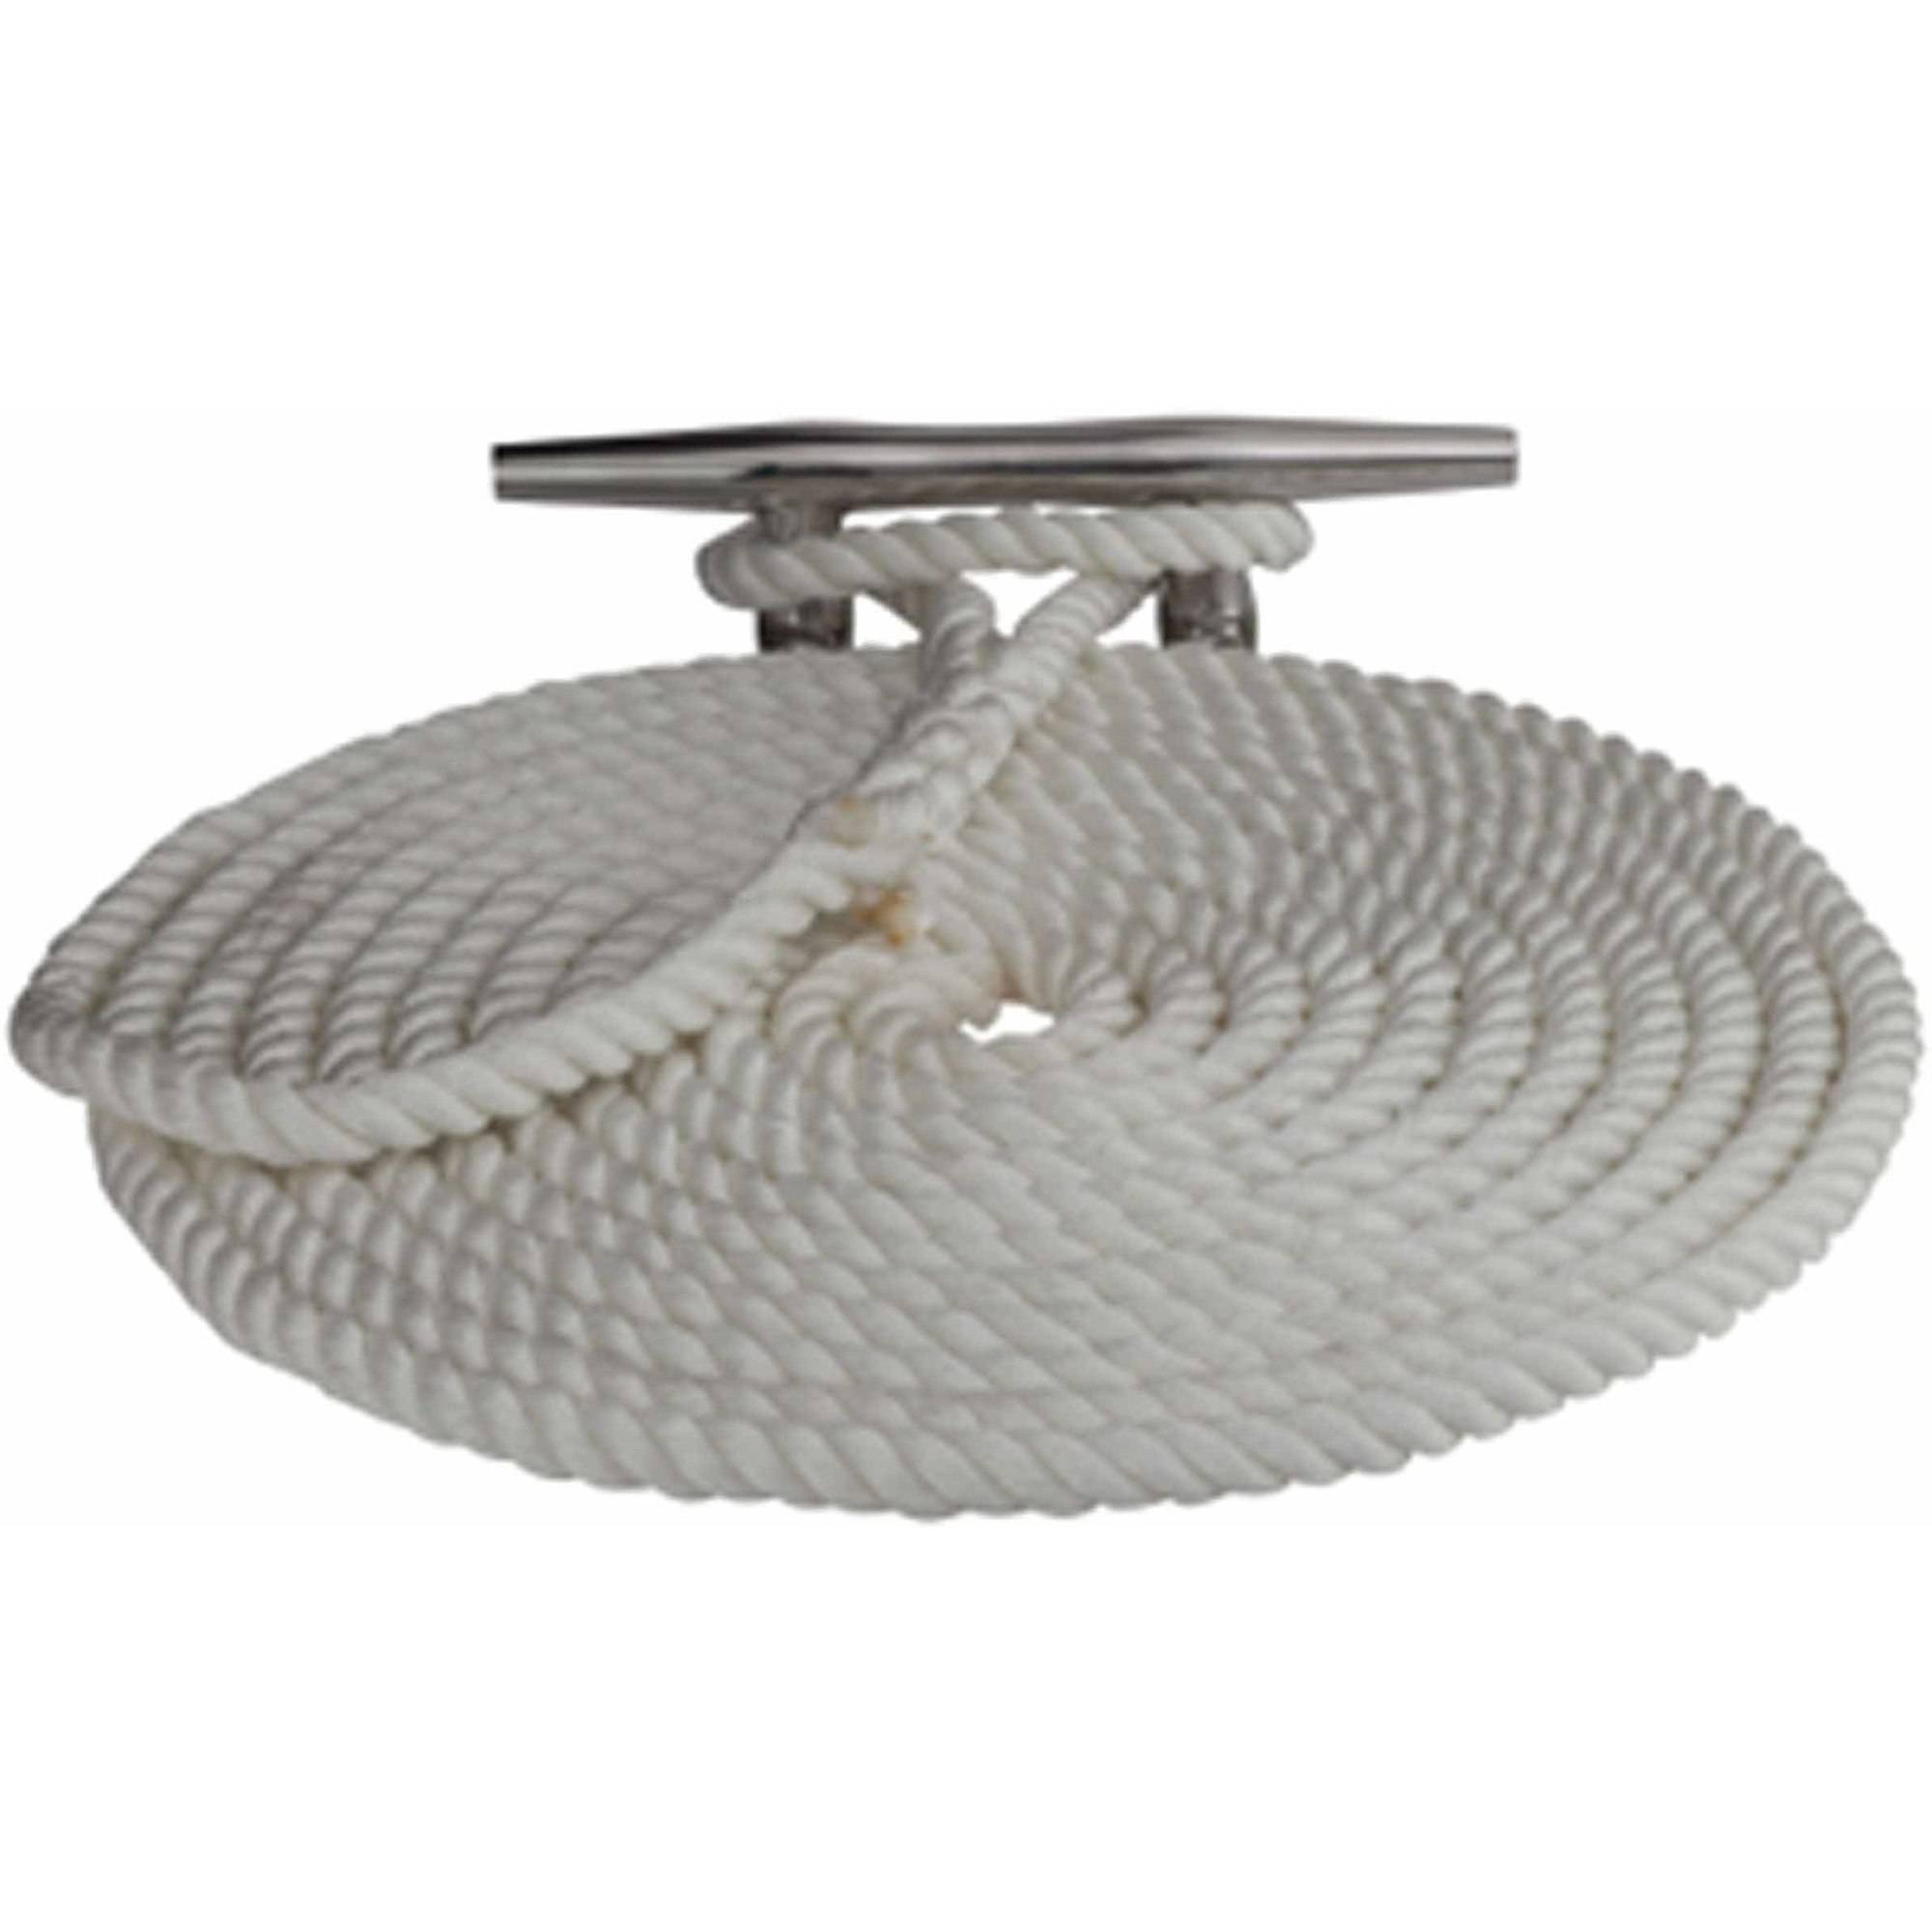 "Click here to buy Sea-Dog 301112050WH-1 Twisted Nylon Dock Line, 1 2"" x 50', White by Sea-Dog."